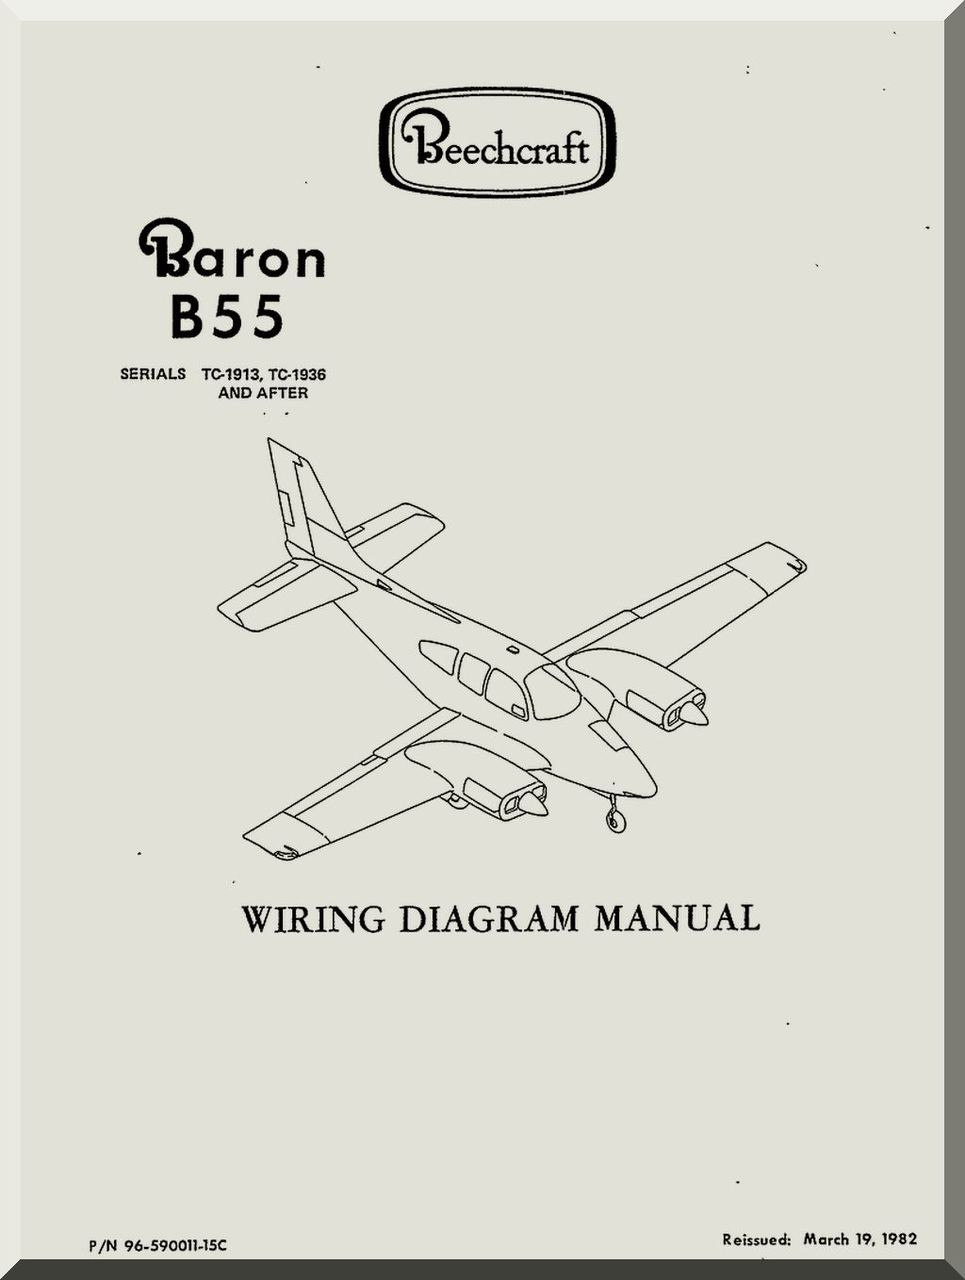 Aerospace Wiring Diagram | Wiring Library